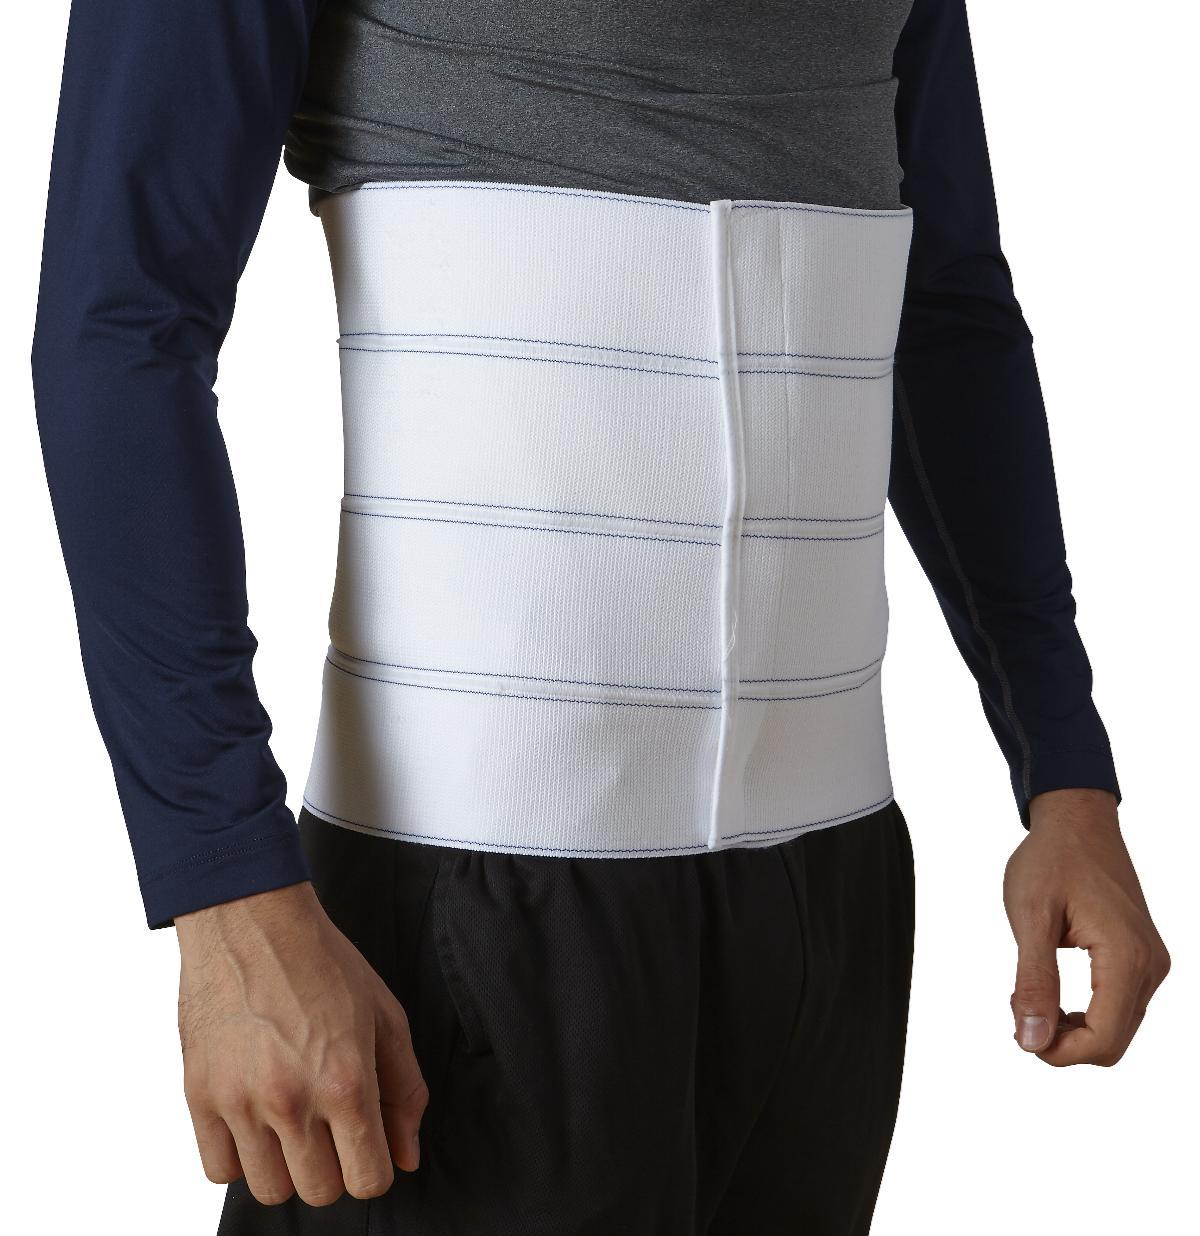 Abdominal Binder 12in 4-panel Std 4xl - Ort213004xl - Patient Therapy Rehabilitation Orthopedic Soft Goods Binders Ribs Belts ORT213004XL